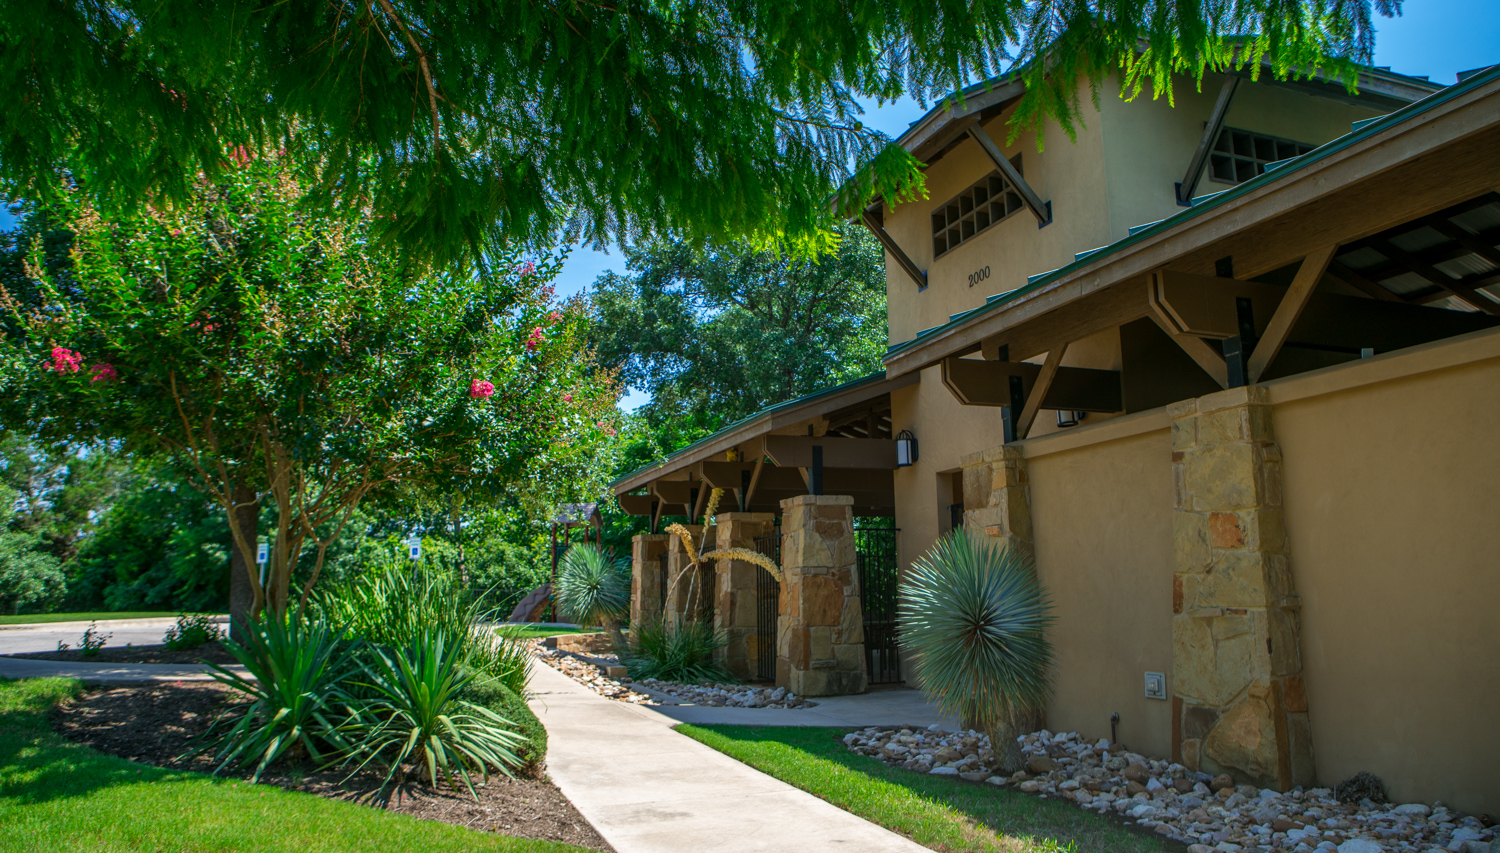 Commercial Landscape in Austin, TX maintained by North By Northwest